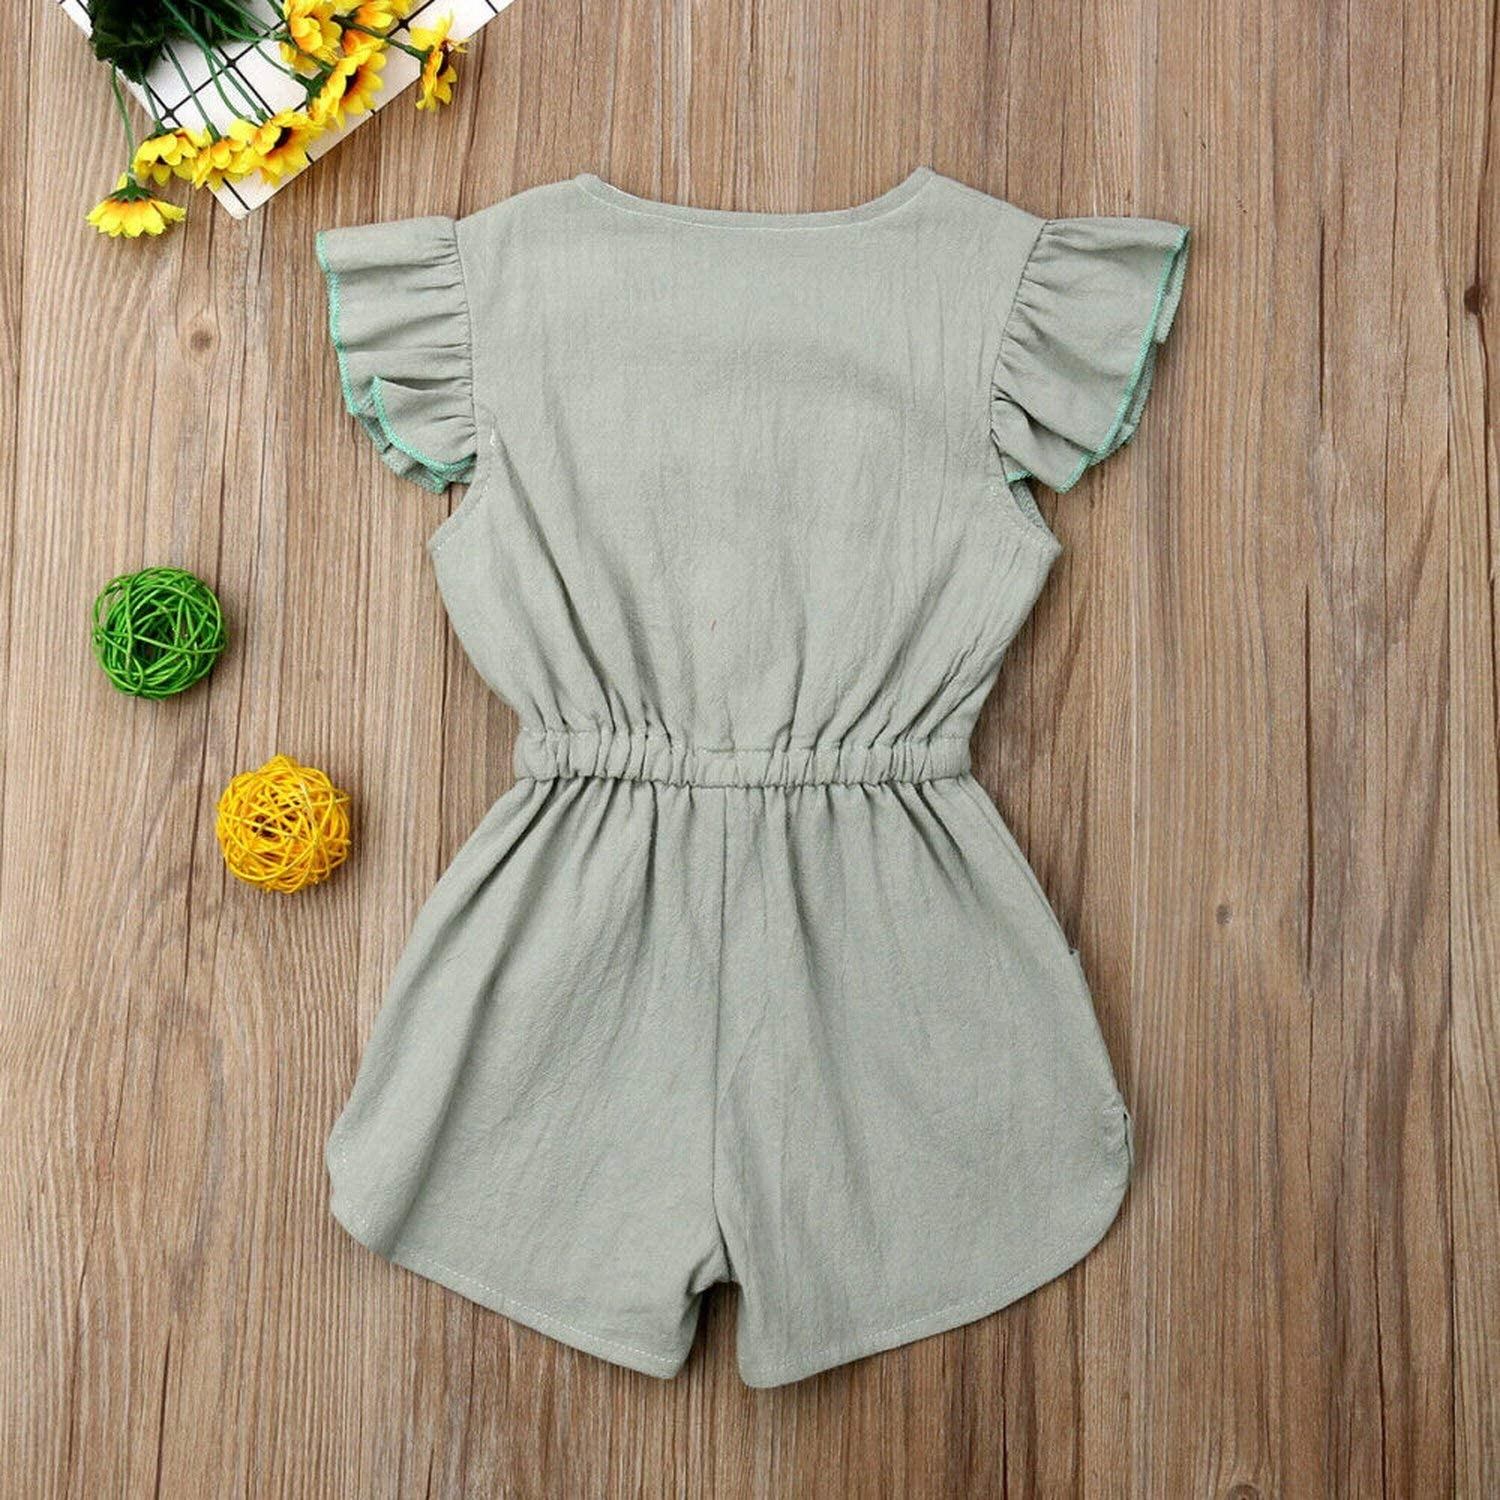 entertainment-moment-romper 1-6Years Toddler Kids Baby Girl Button Sleeveless Ruffle Playsuit Jumpsuit Outfits Clothes